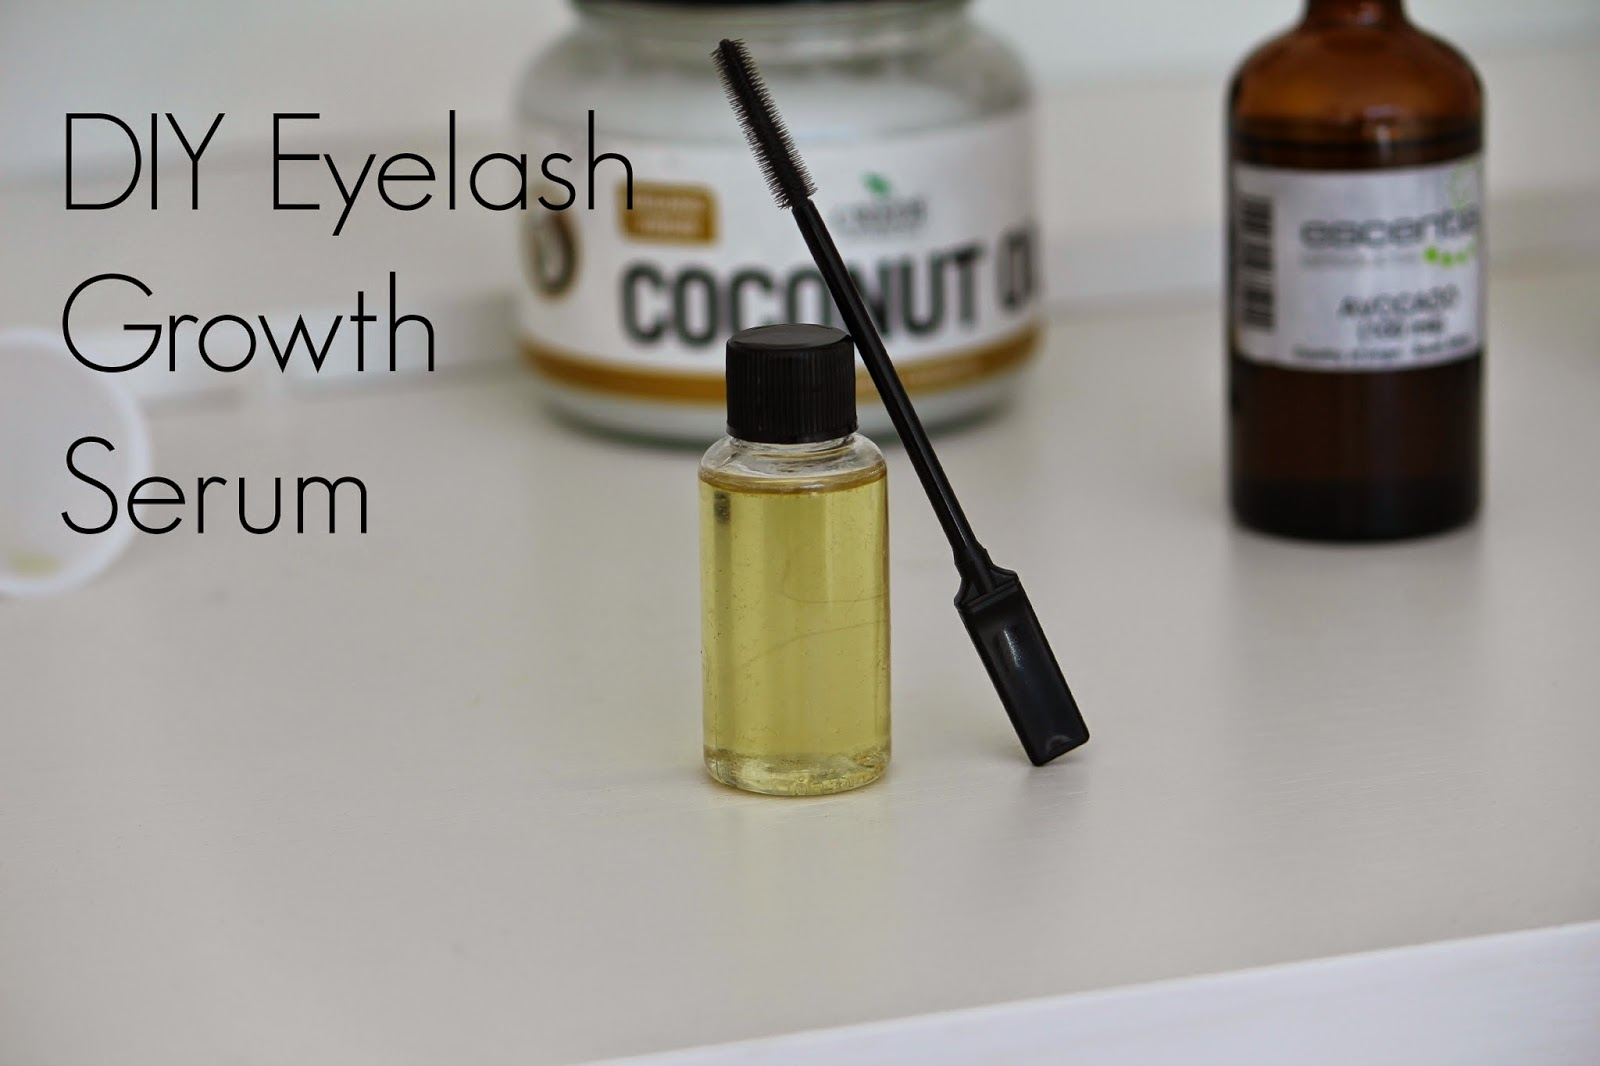 DIY eyelash growth serum growing long and thick eyelashes naturally